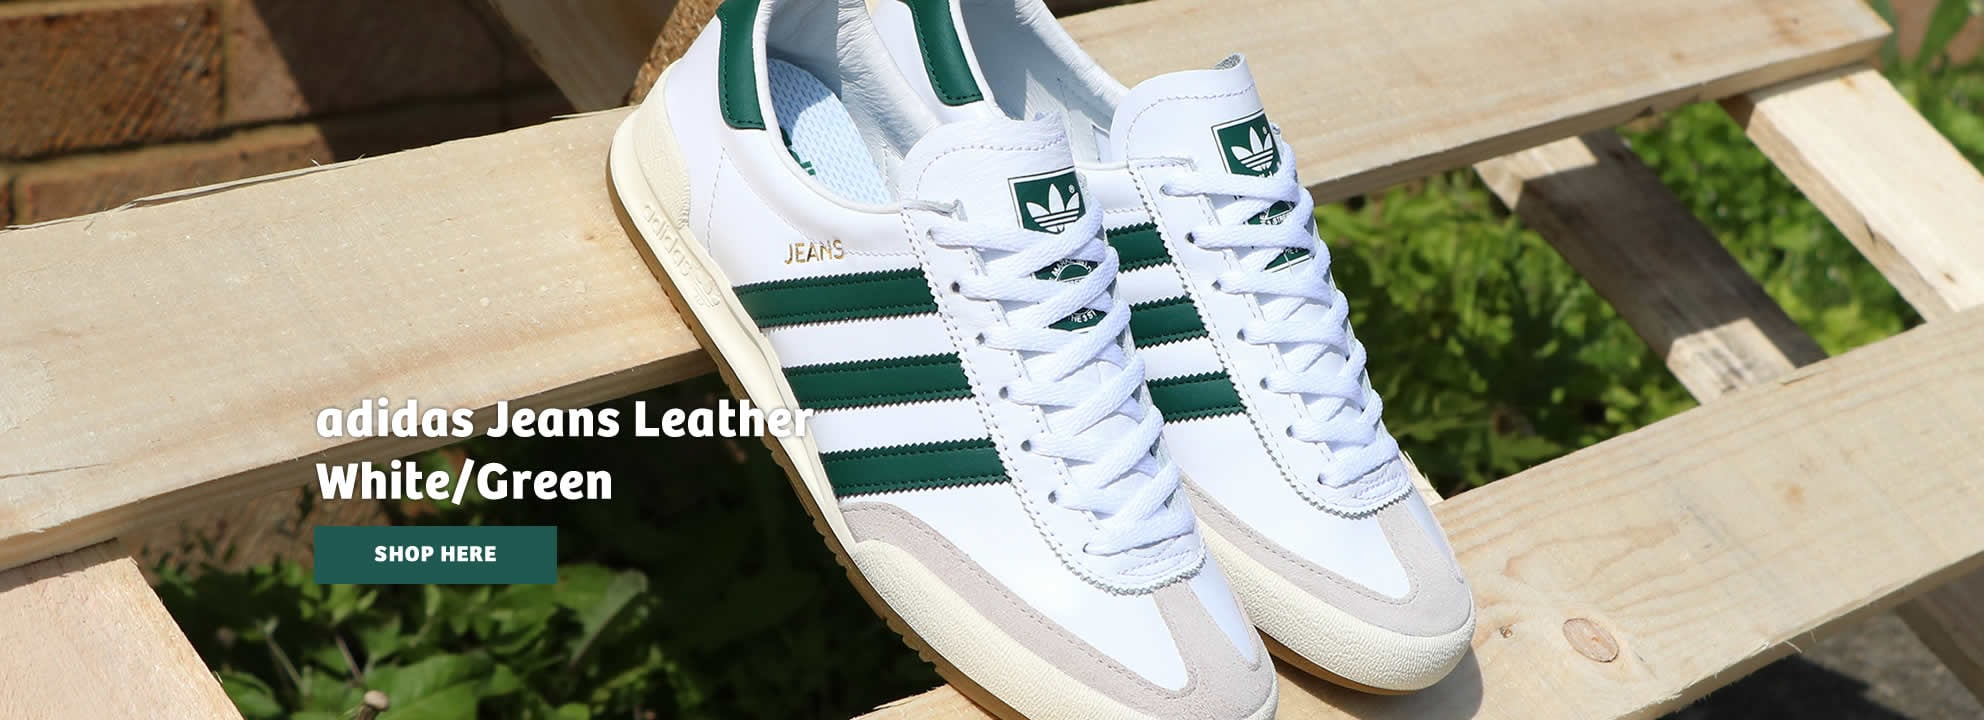 Adidas Jeans Leather White and Green